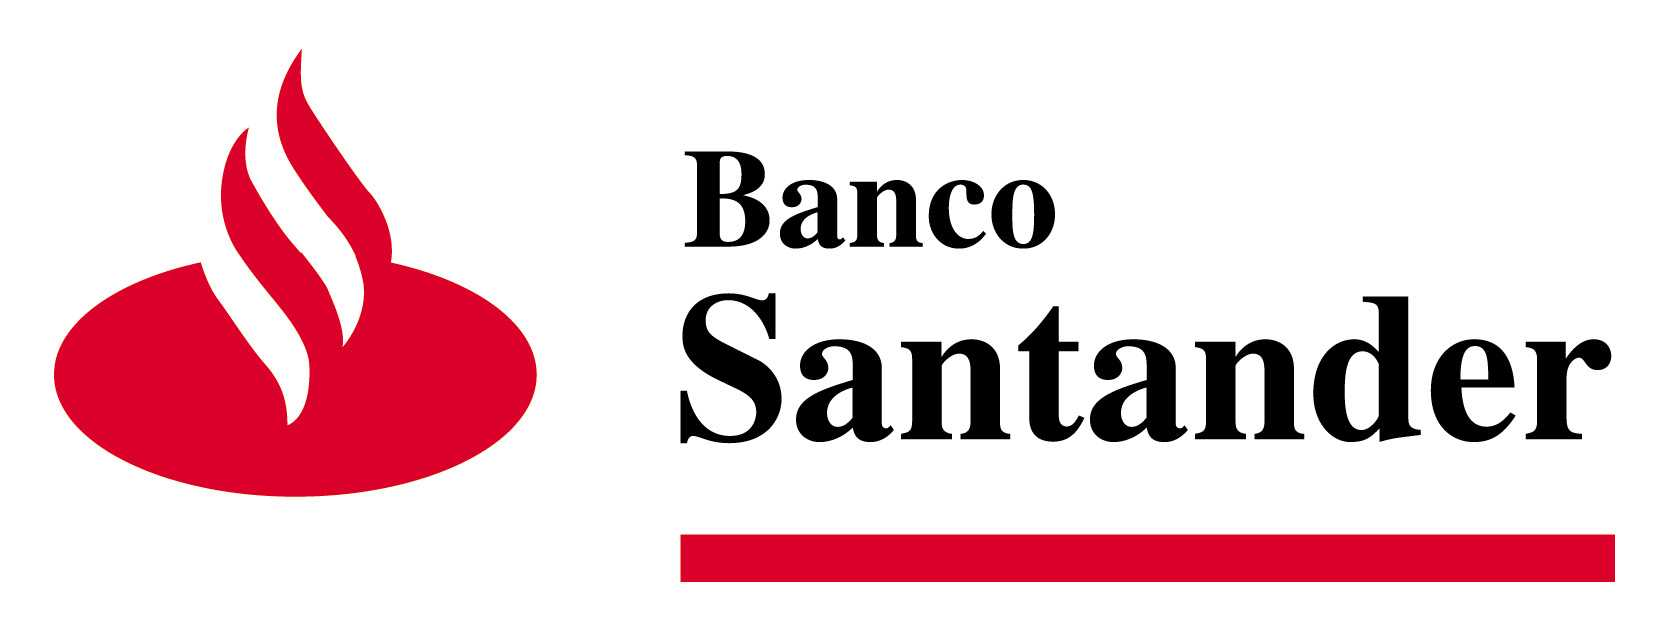 assessment of santander consumer finance's approach Initiatives initiatives the performance assessment and recognition processes in order and santander consumer finance, aims to make santander the world's.